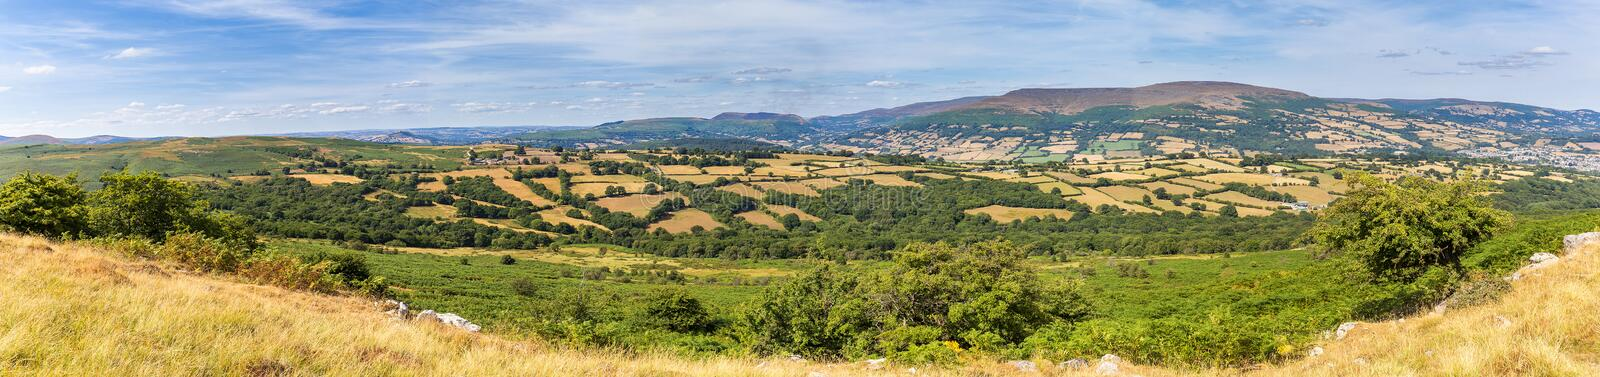 Panorama Brecon Beacons National Park royalty free stock images